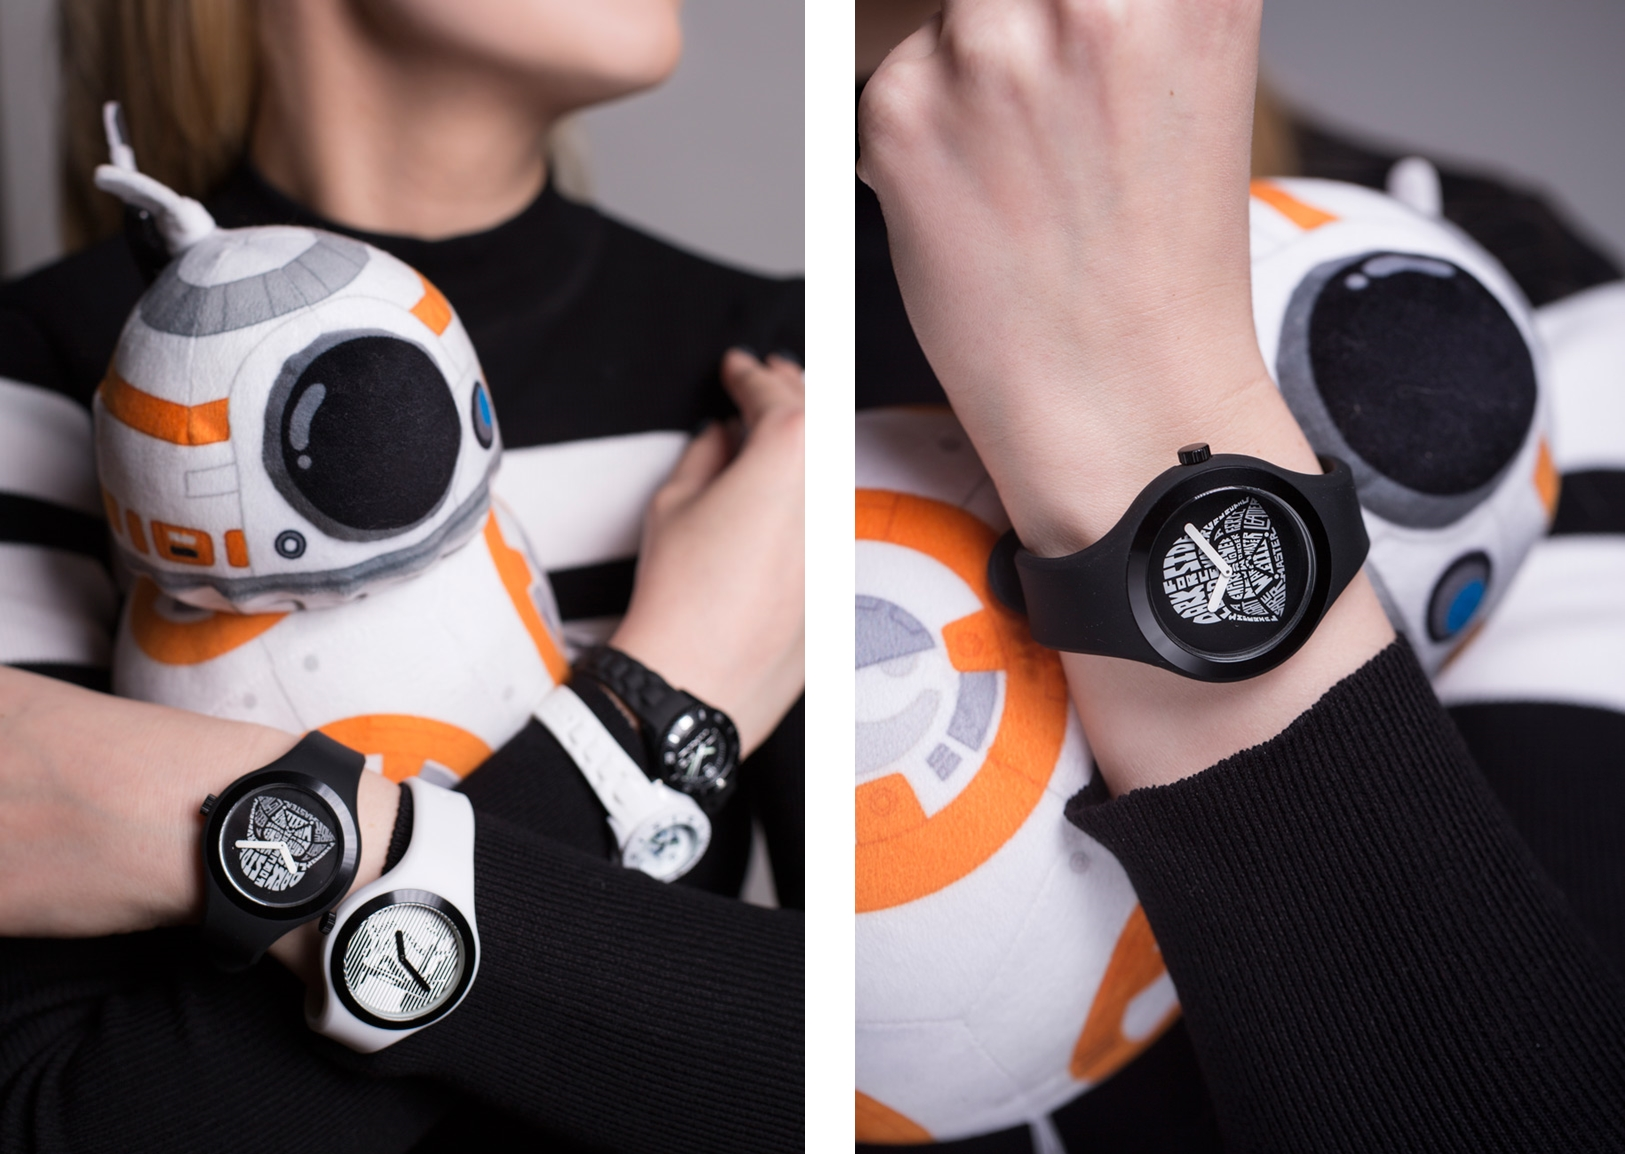 STAR-WARS_AM-PM_Pica-Pica_-26-horz